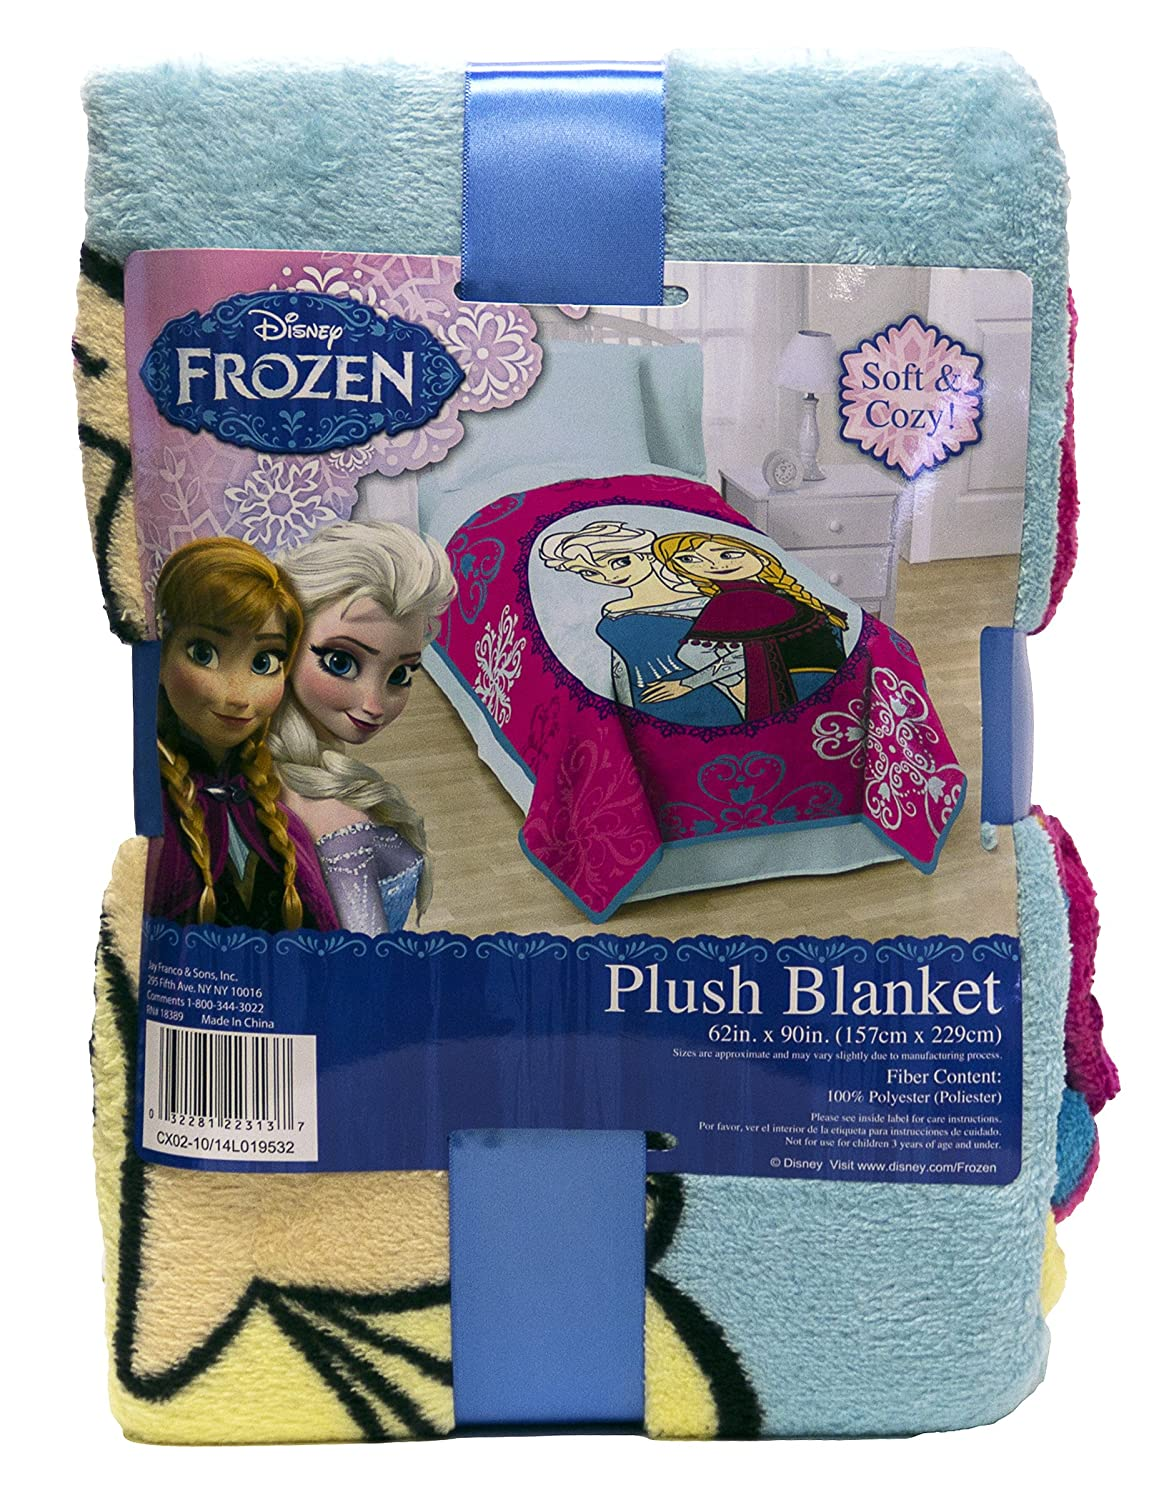 Disney Frozen Anna y Elsa copo de nieve manta de forro polar, Anna and Elsa, Twin Blanket: Amazon.es: Hogar